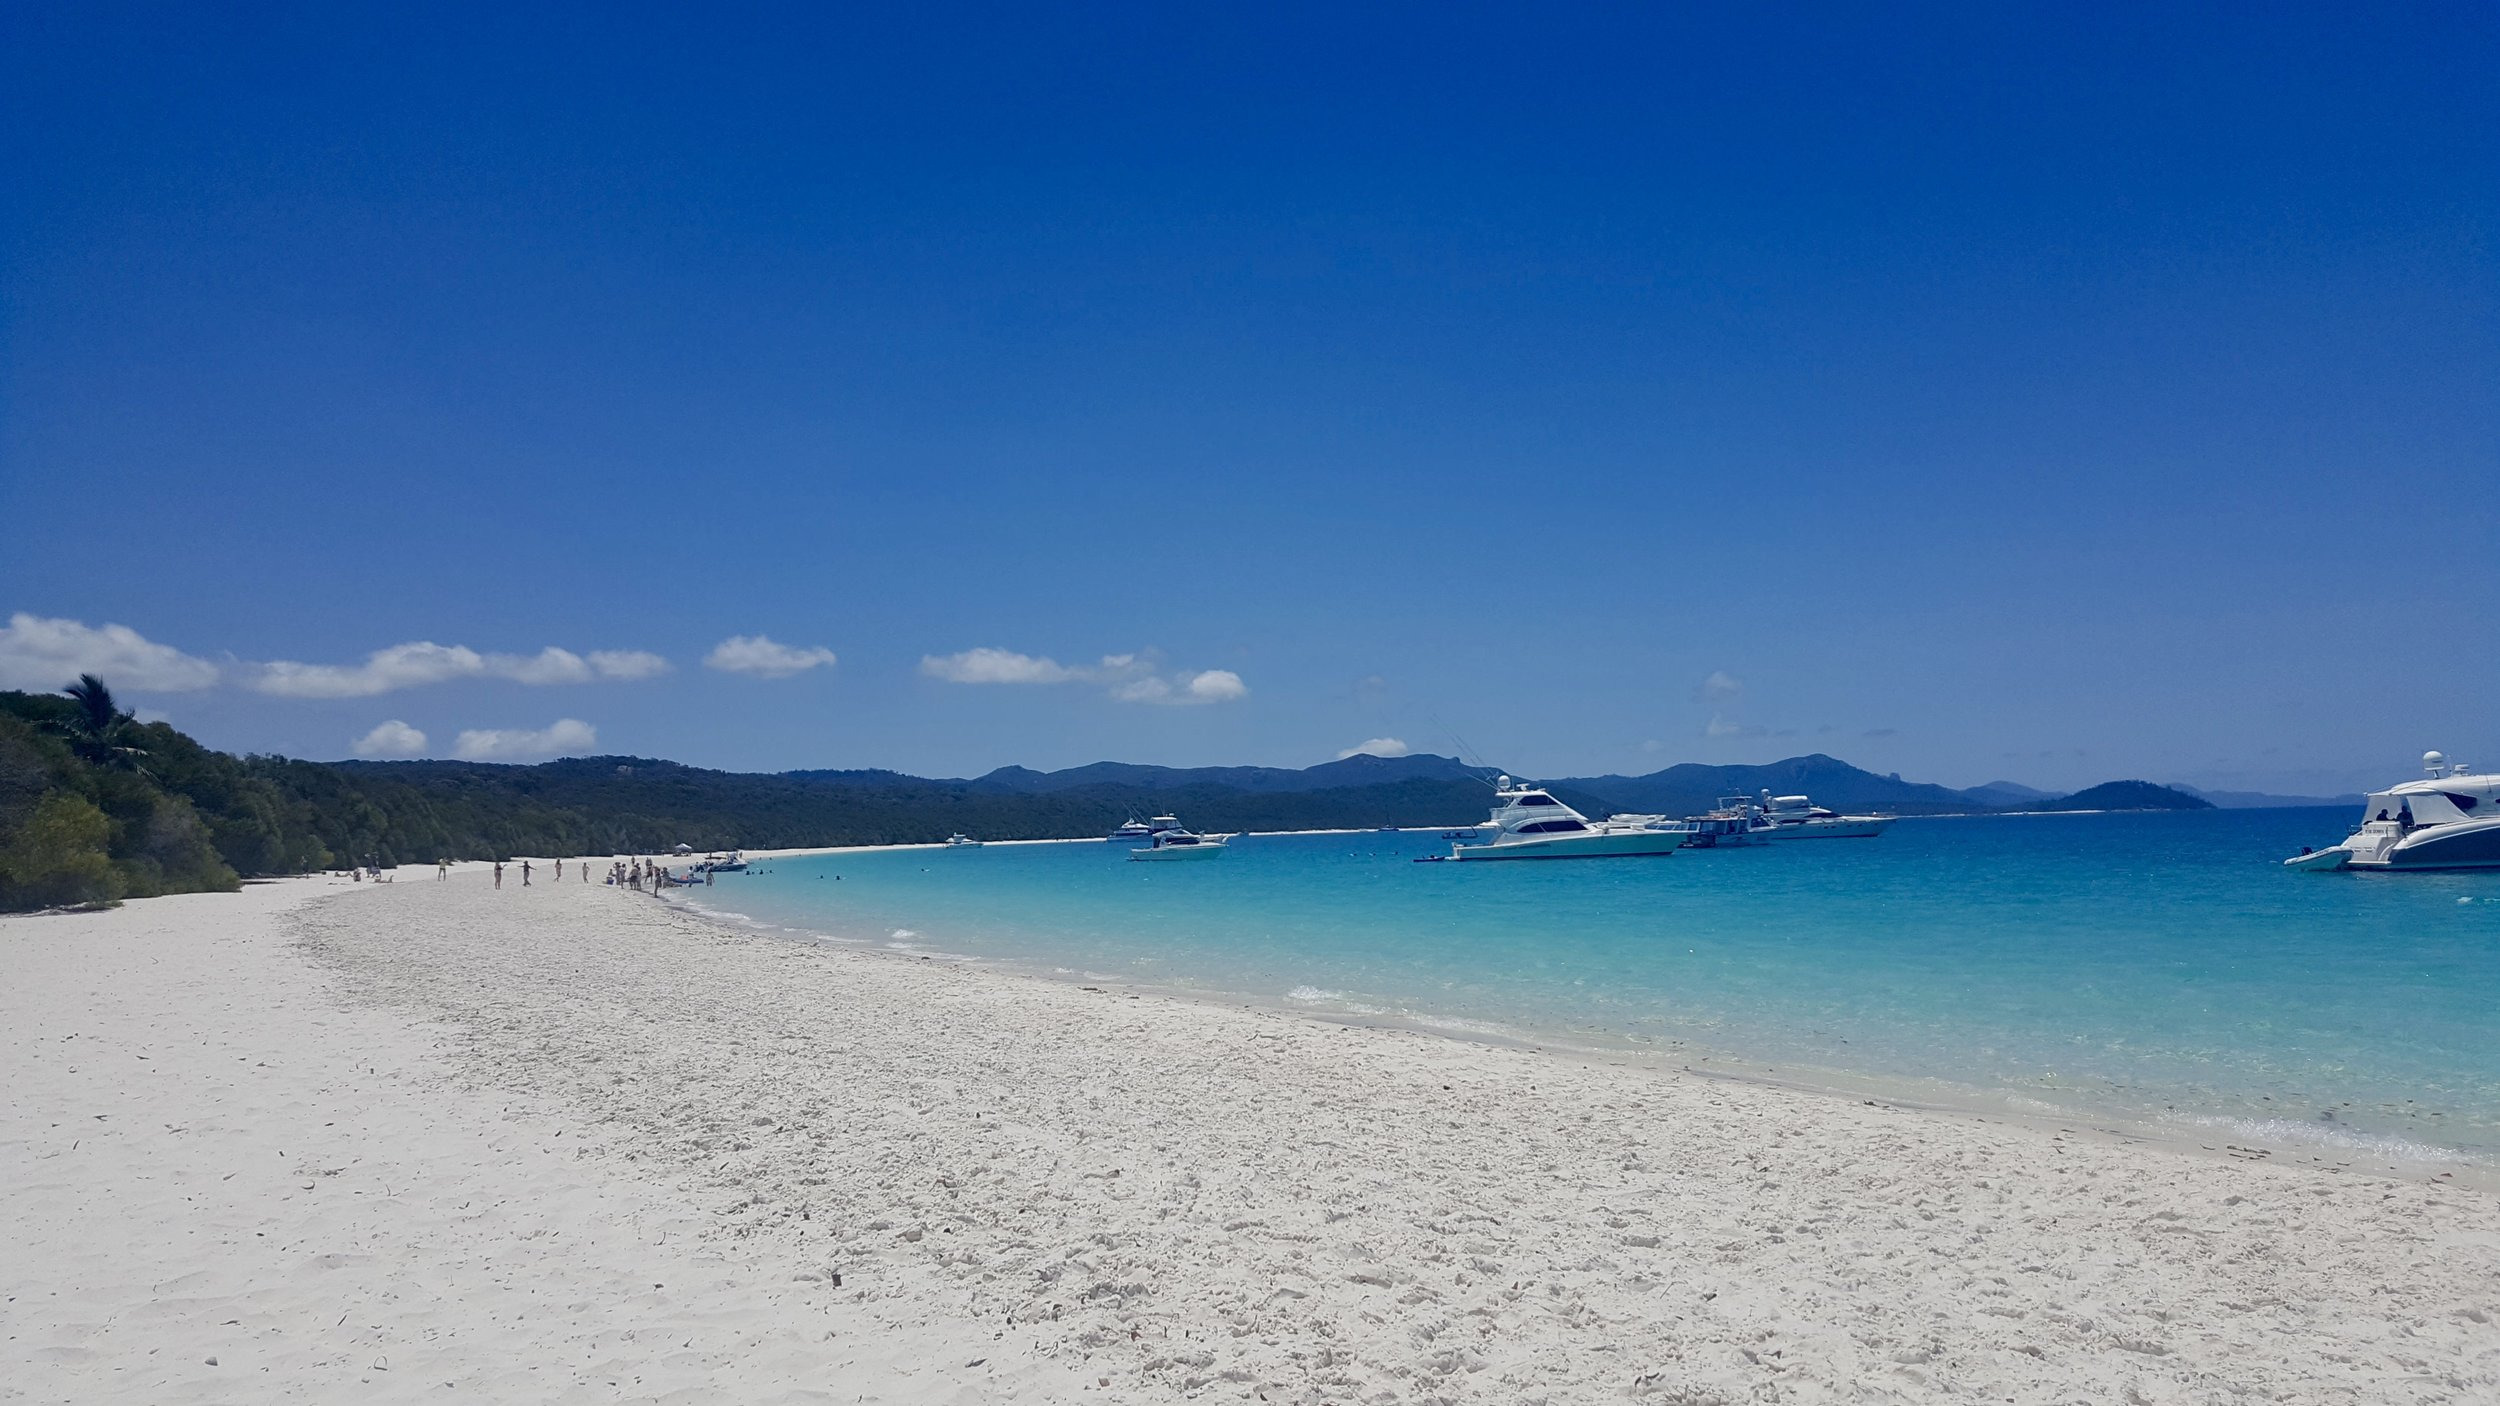 The silica sand and turquoise blue waters of Whitehaven Beach, Whitsundays, Queensland, Australia